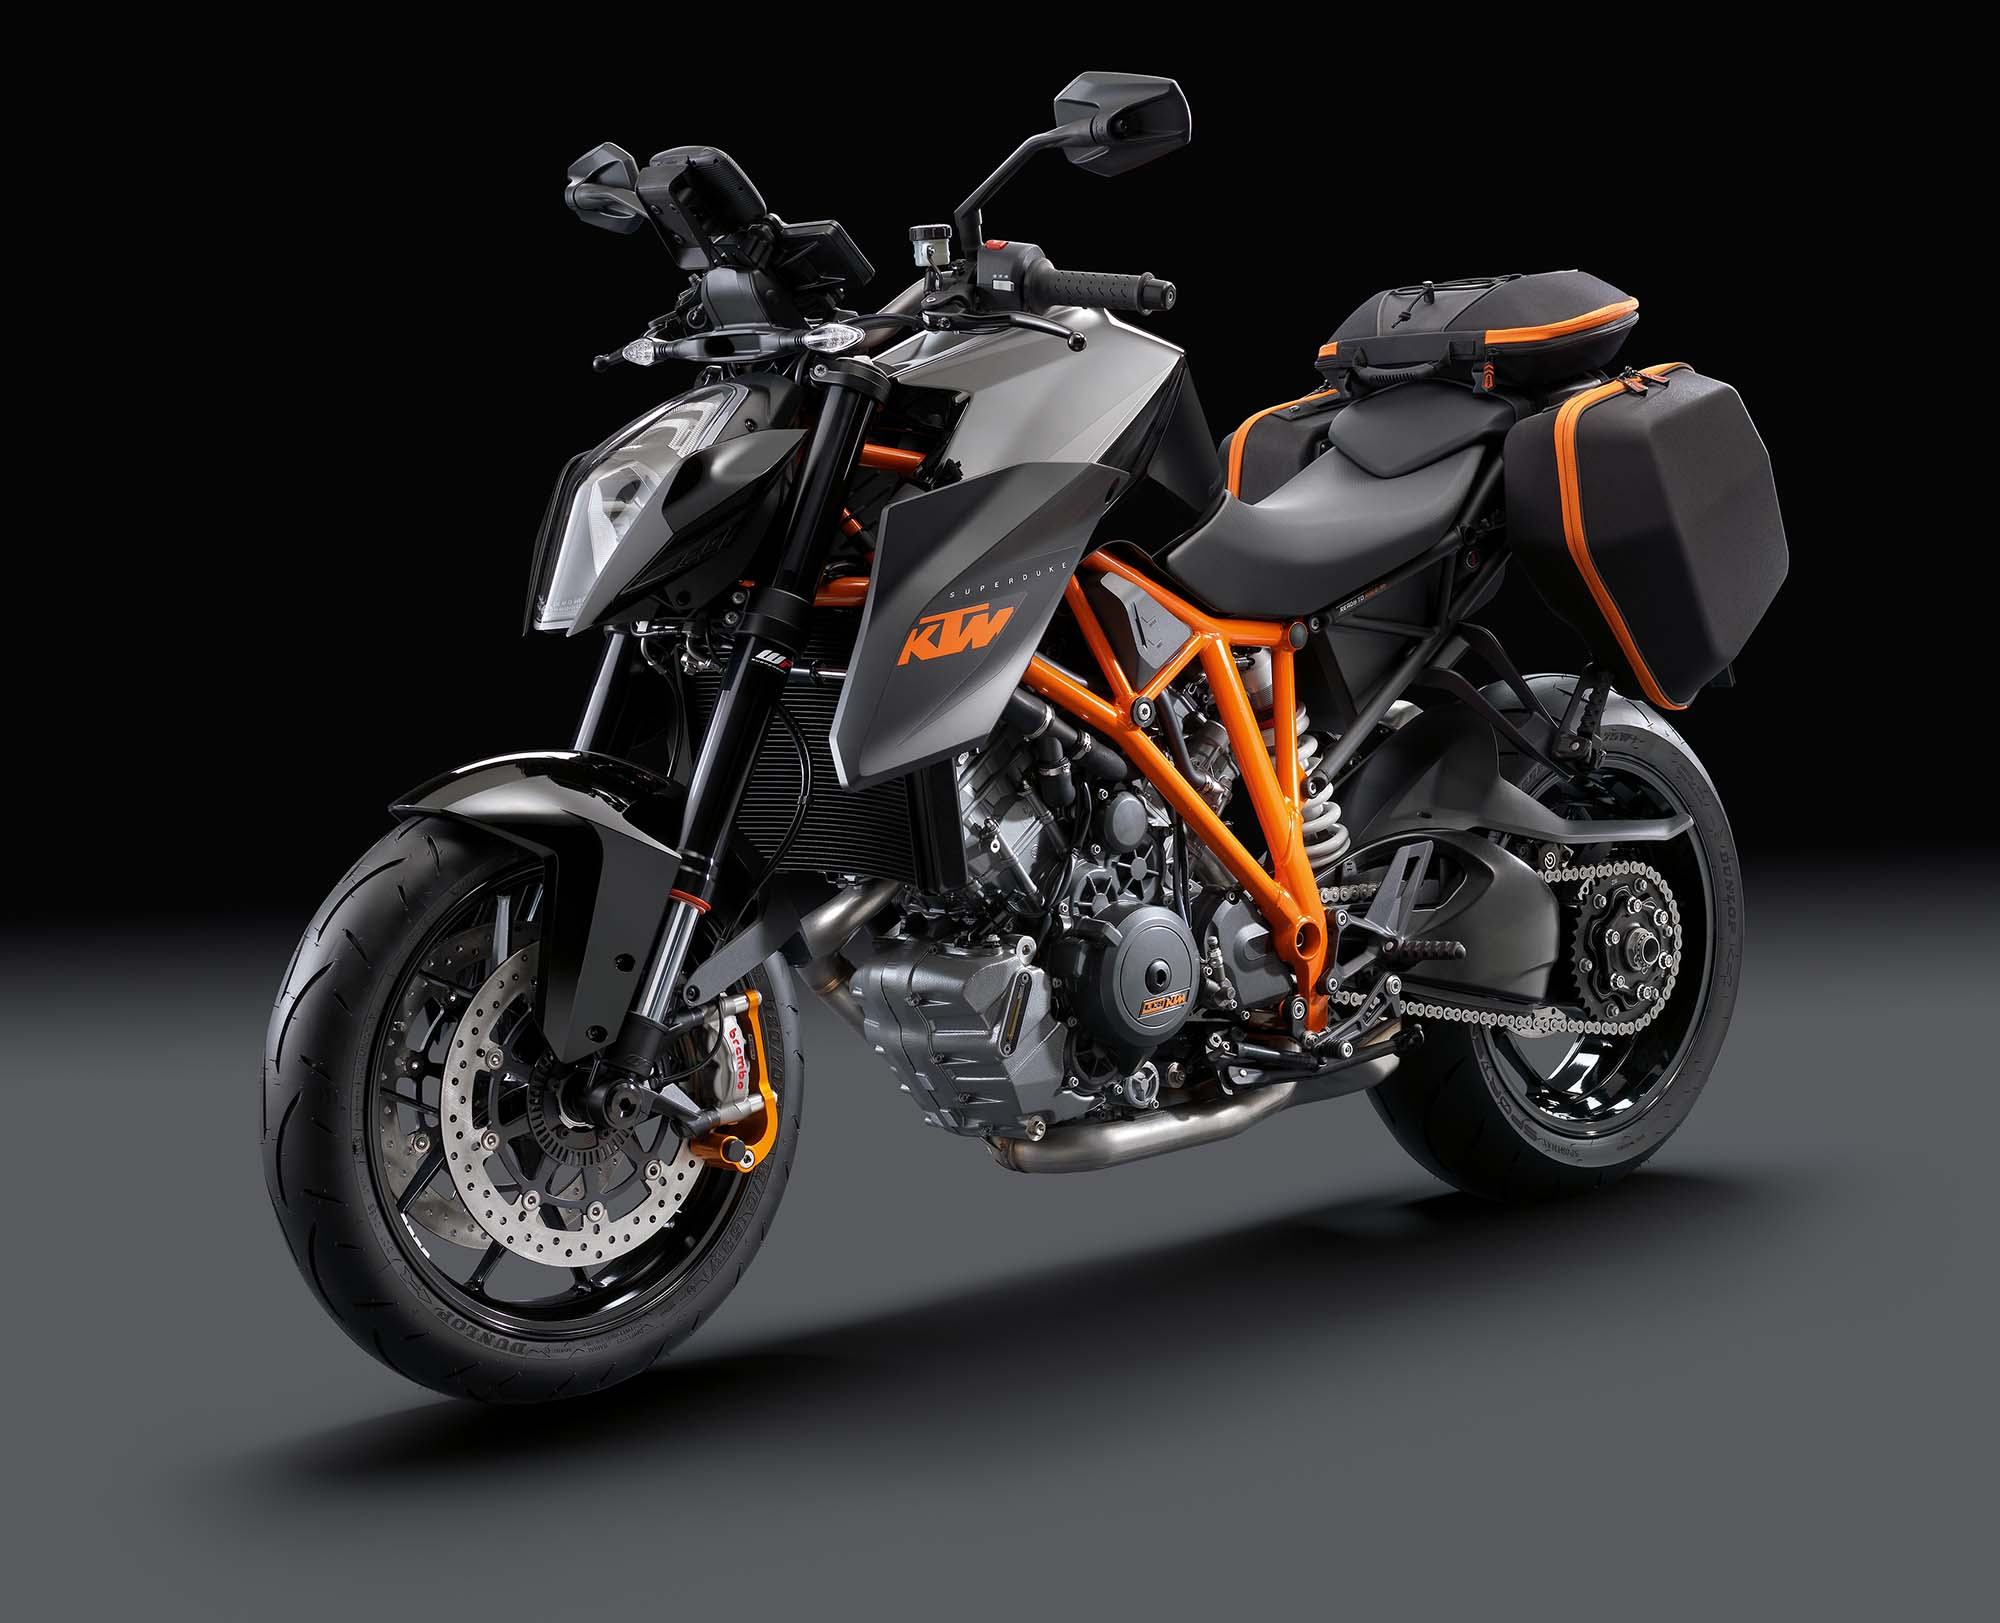 gallery foto ktm super duke r 1290. Black Bedroom Furniture Sets. Home Design Ideas